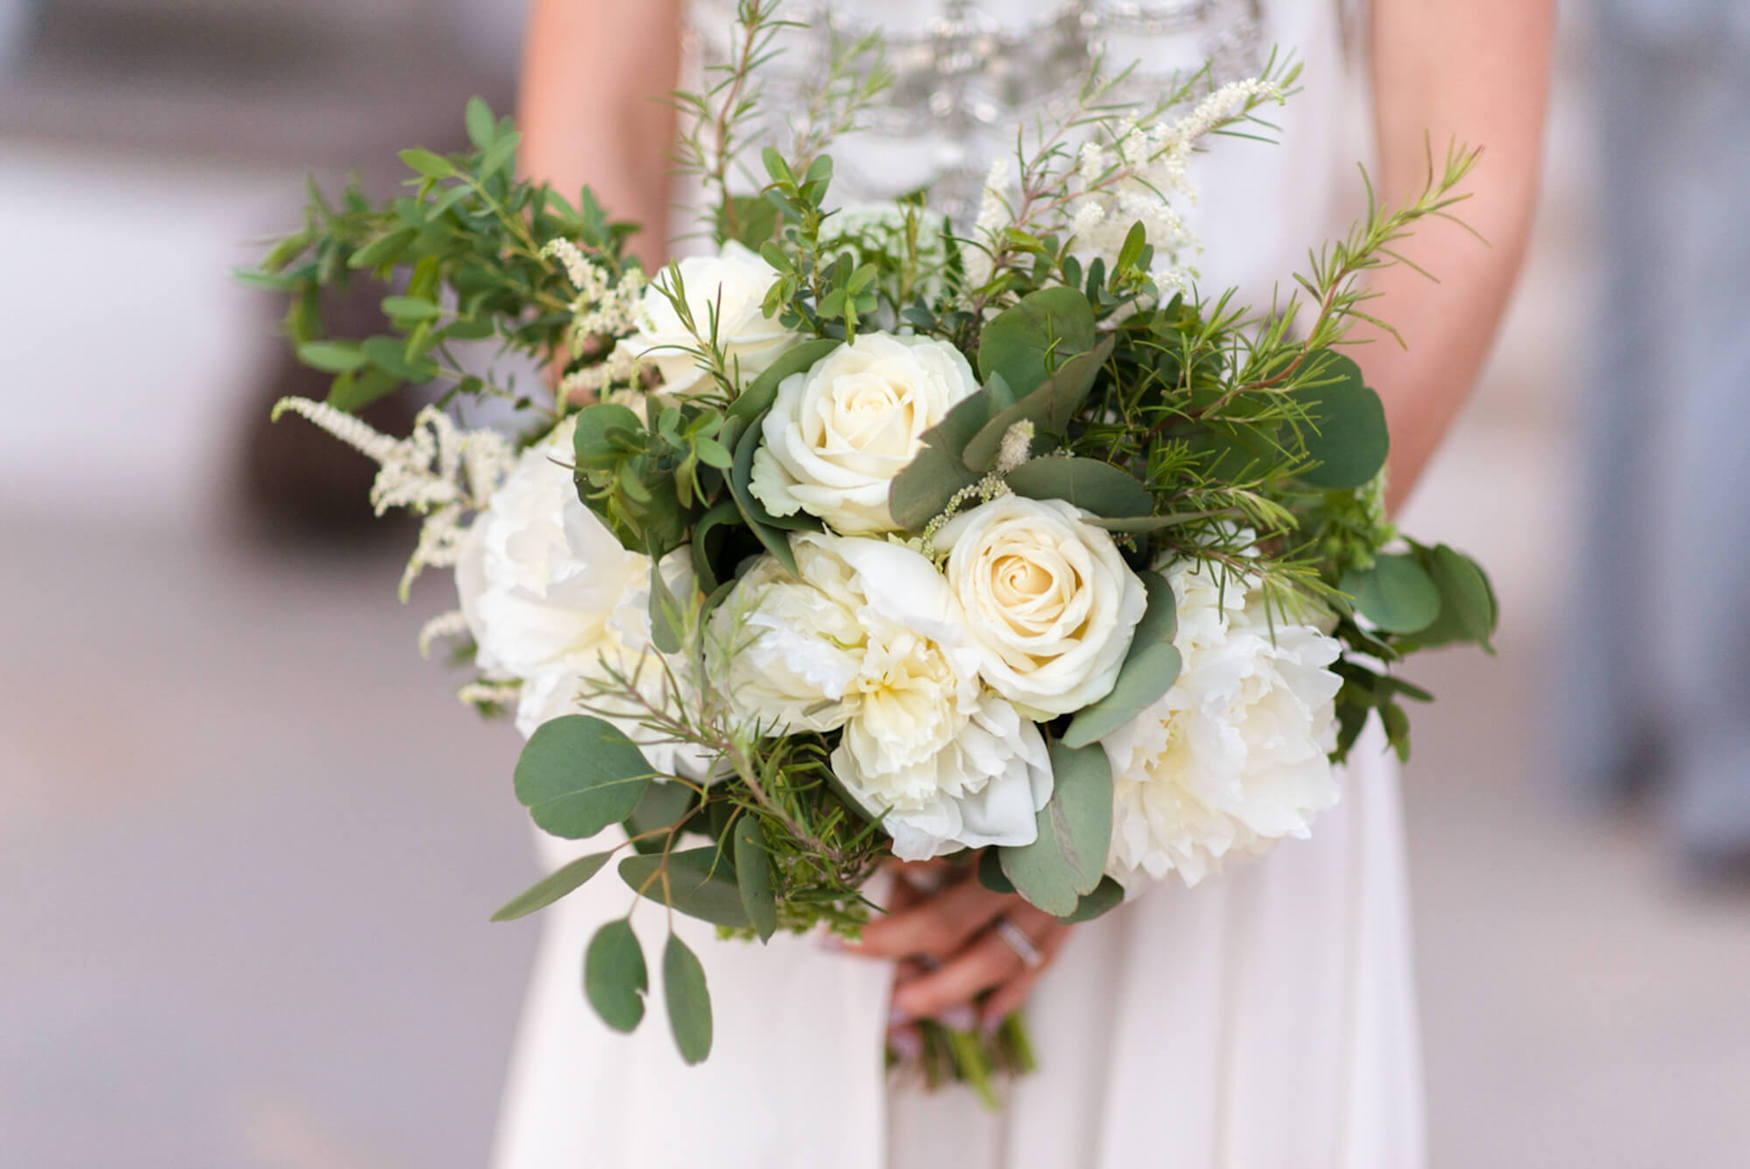 wedding flowers bouquet white roses